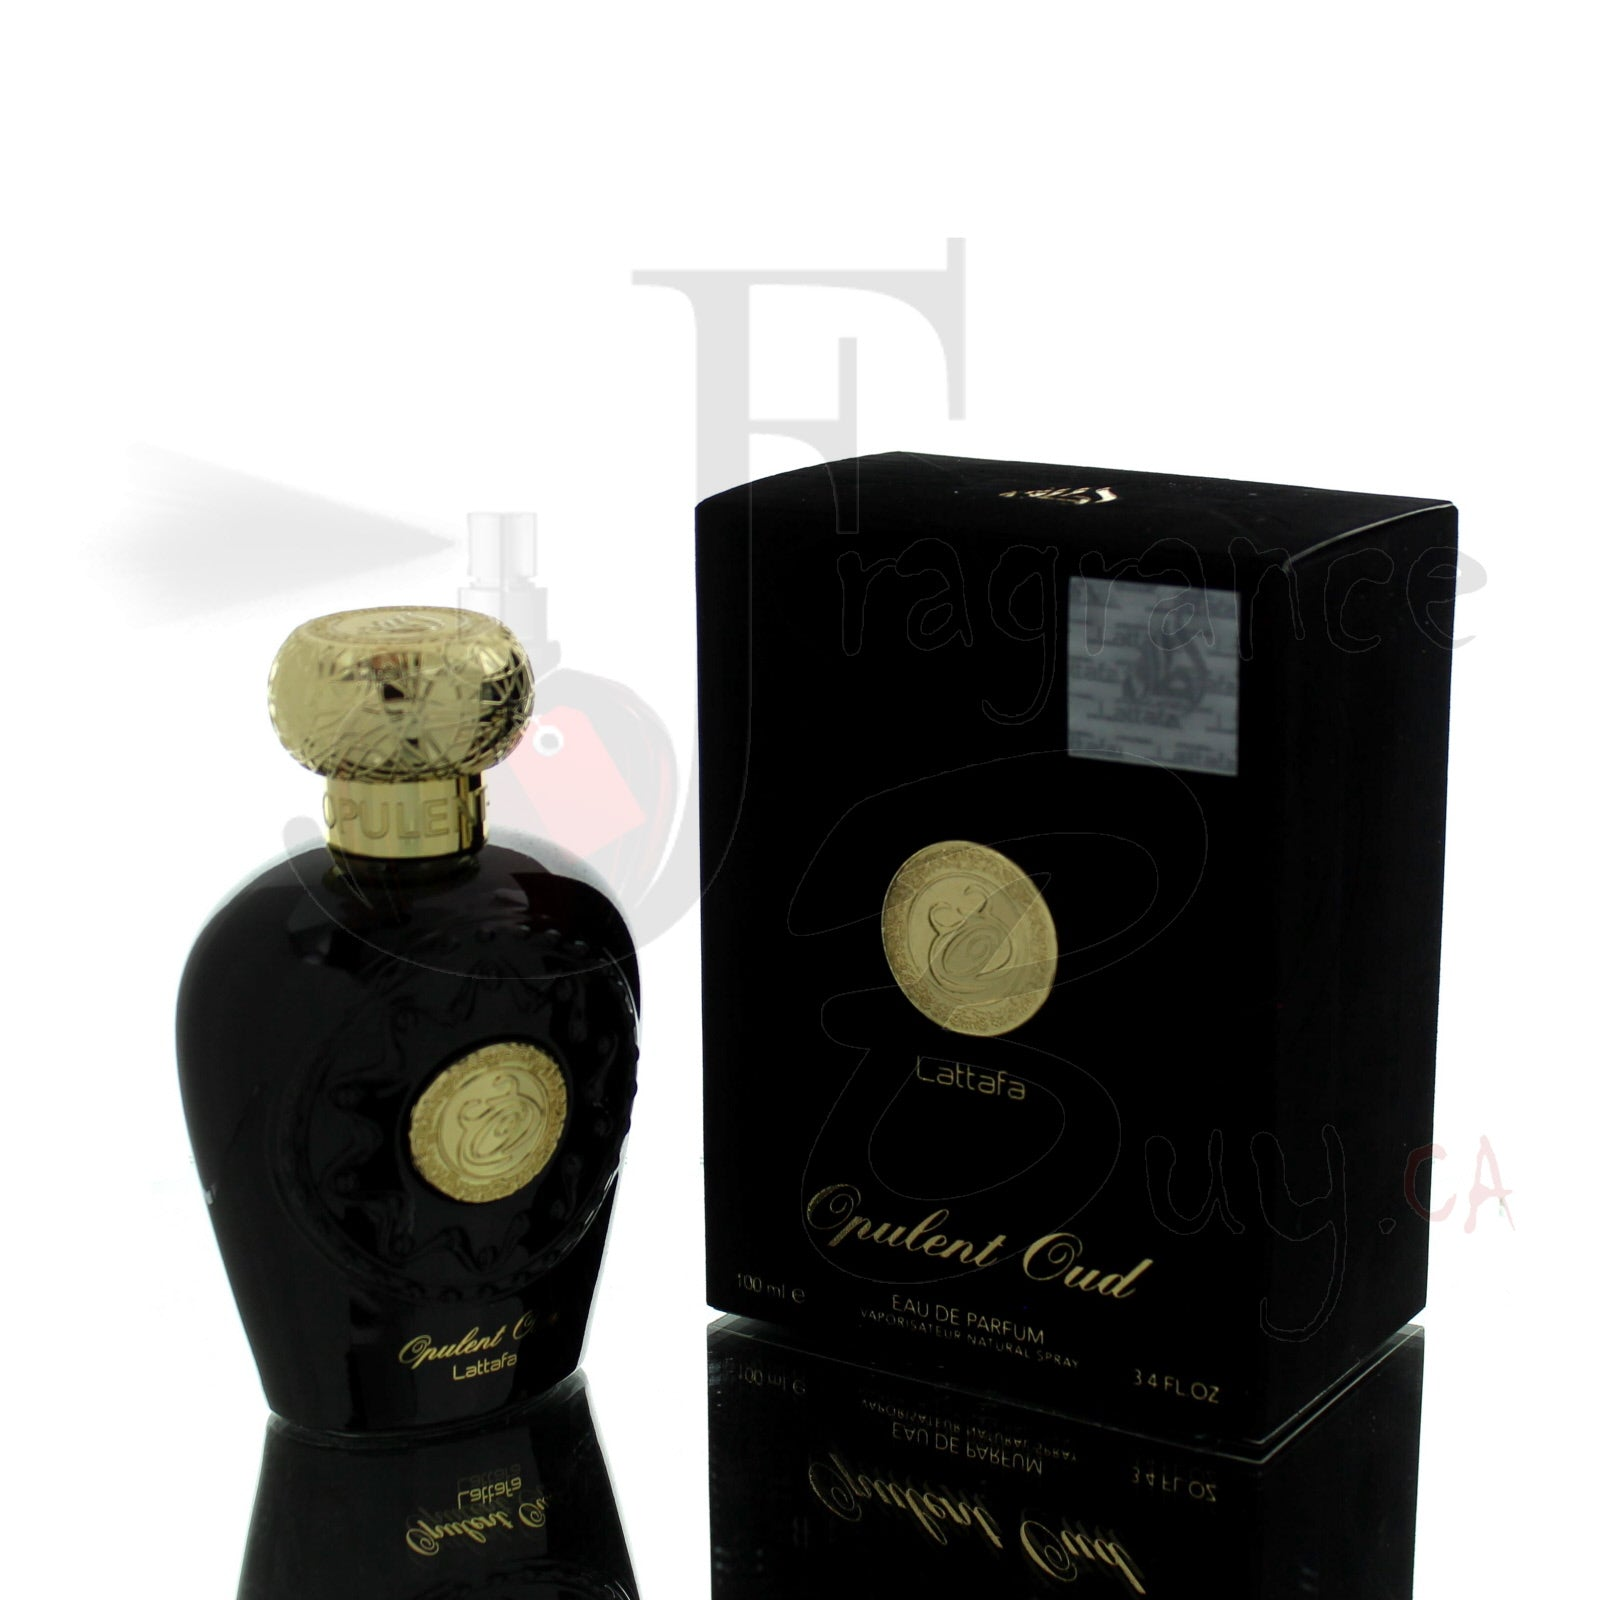 Lattafa Opulent Oud For Man/Woman